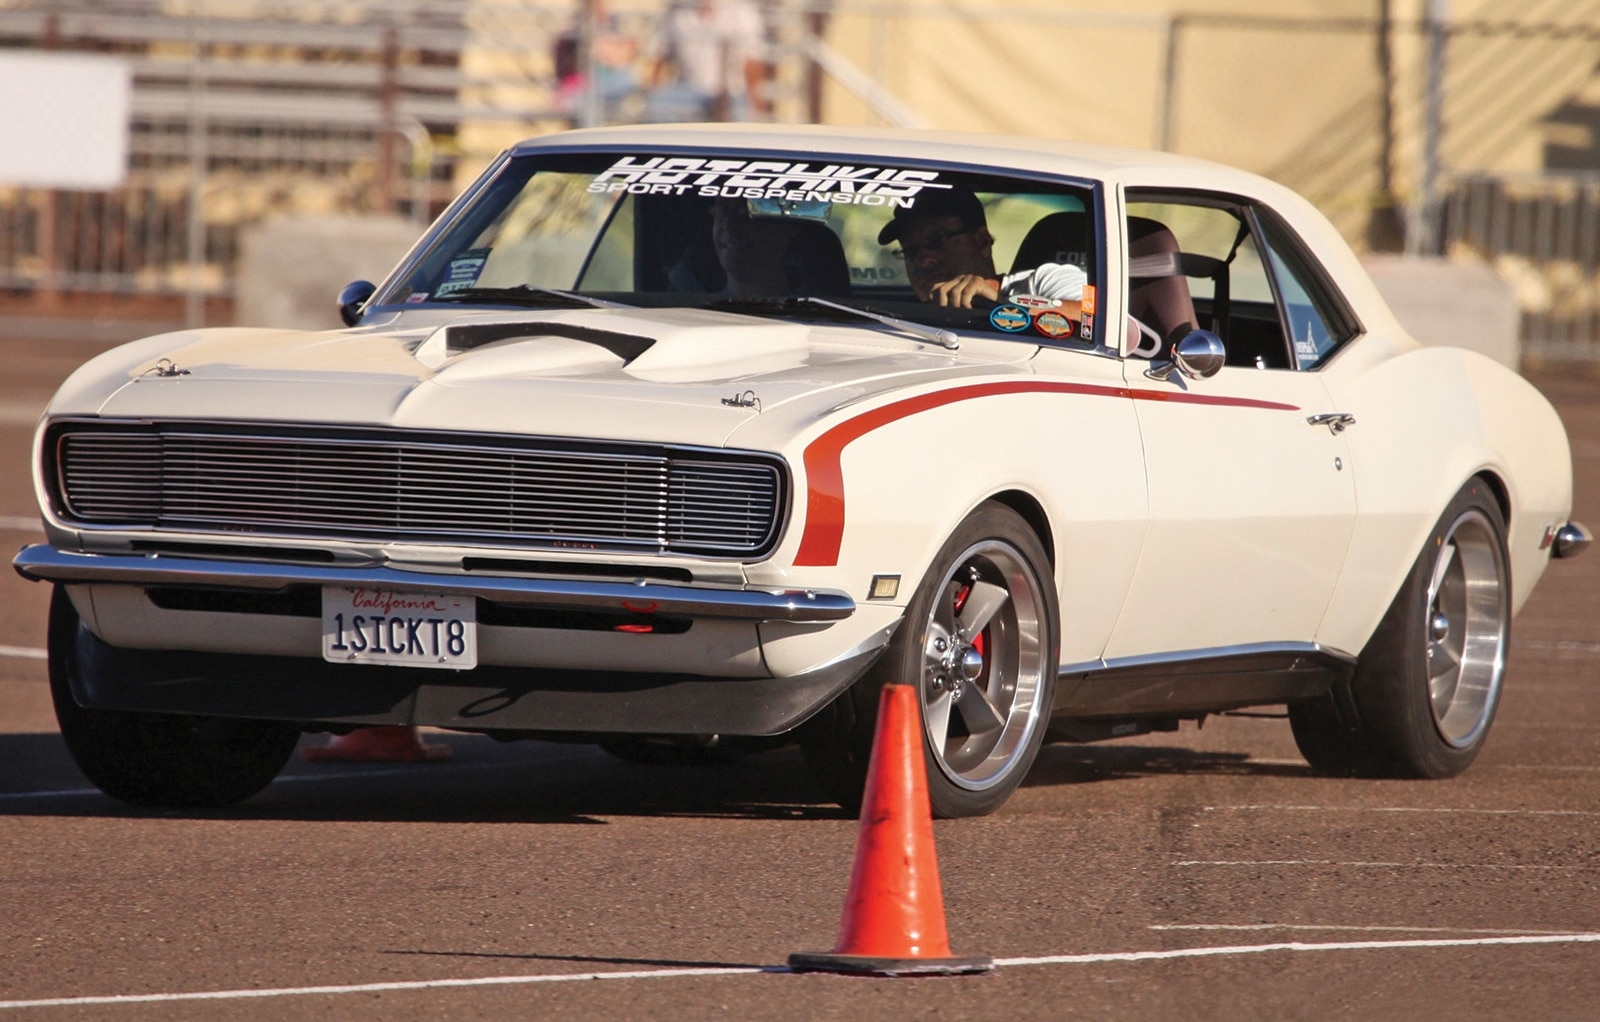 Goodguys AutoCross 11